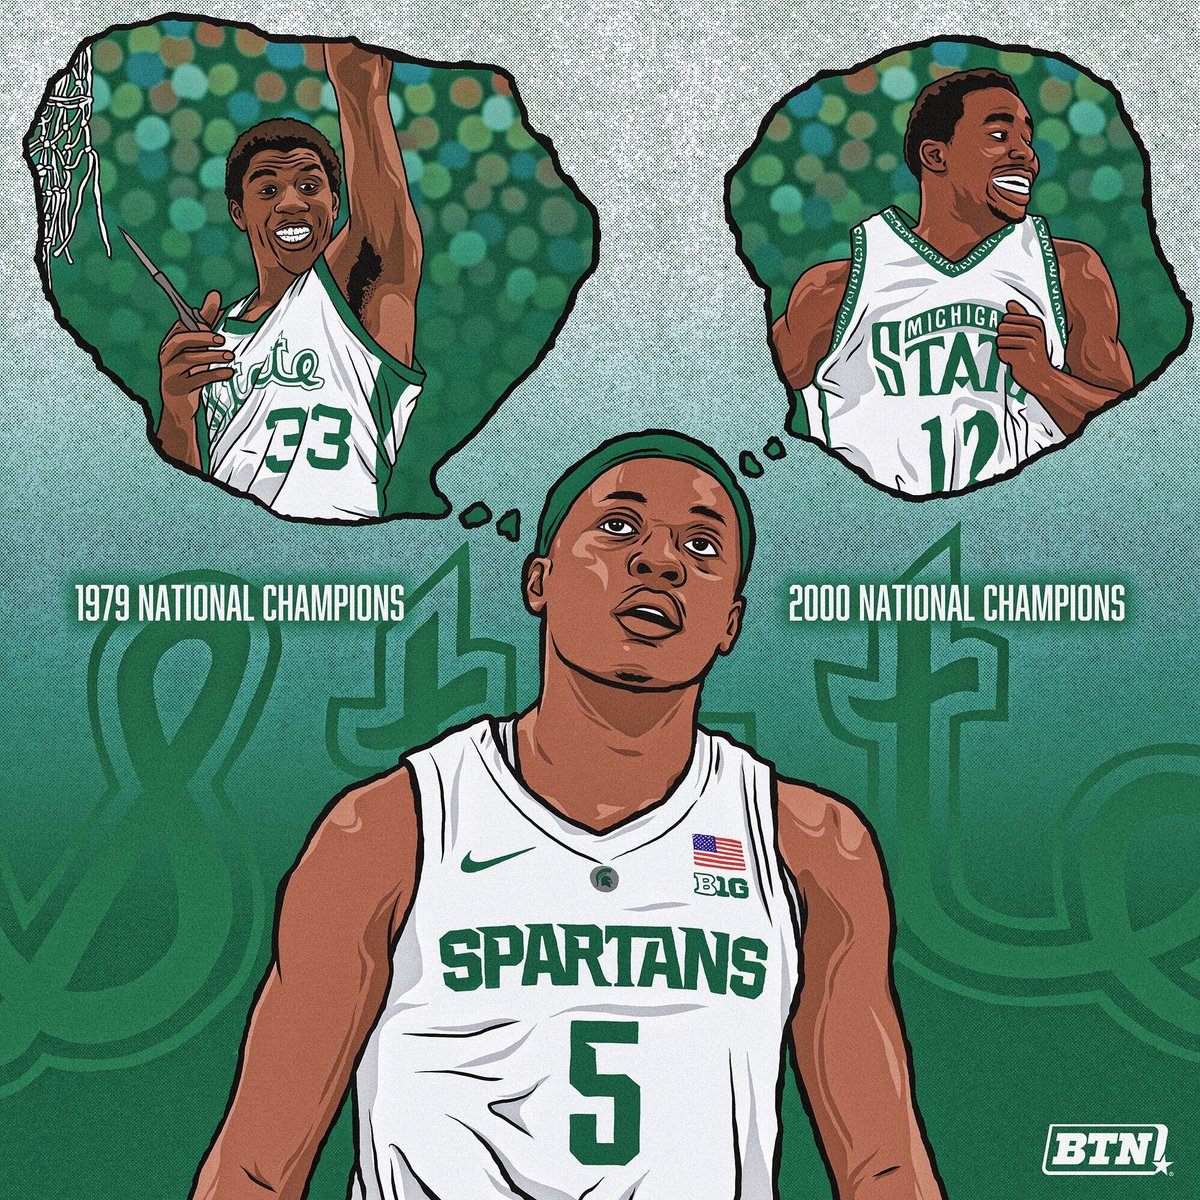 Unfinished business for @cassiuswinston.